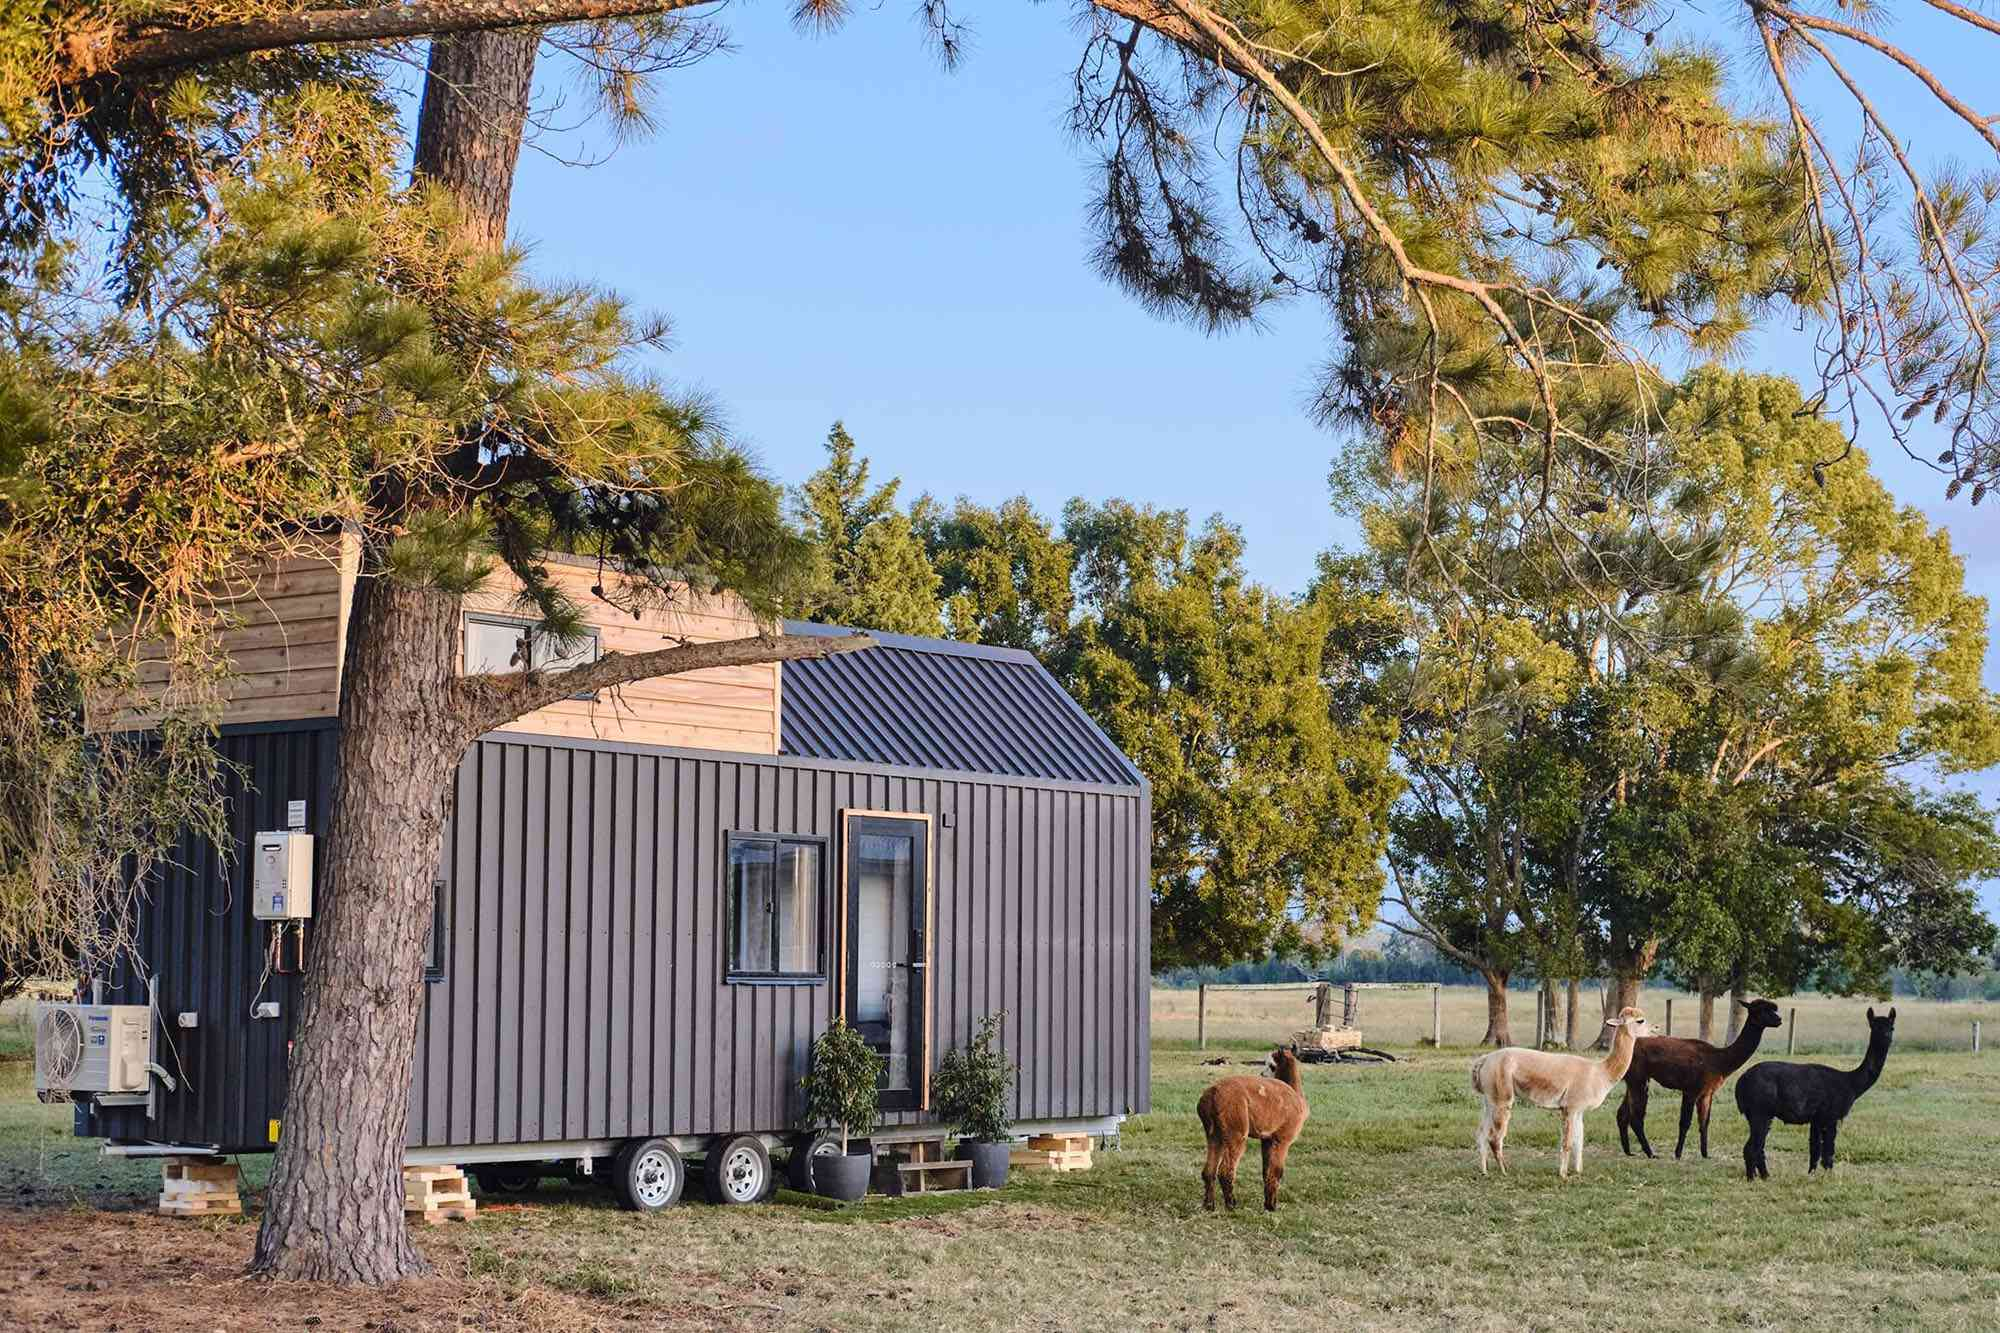 Sojourner Tiny House by Hauslein Tiny House Company